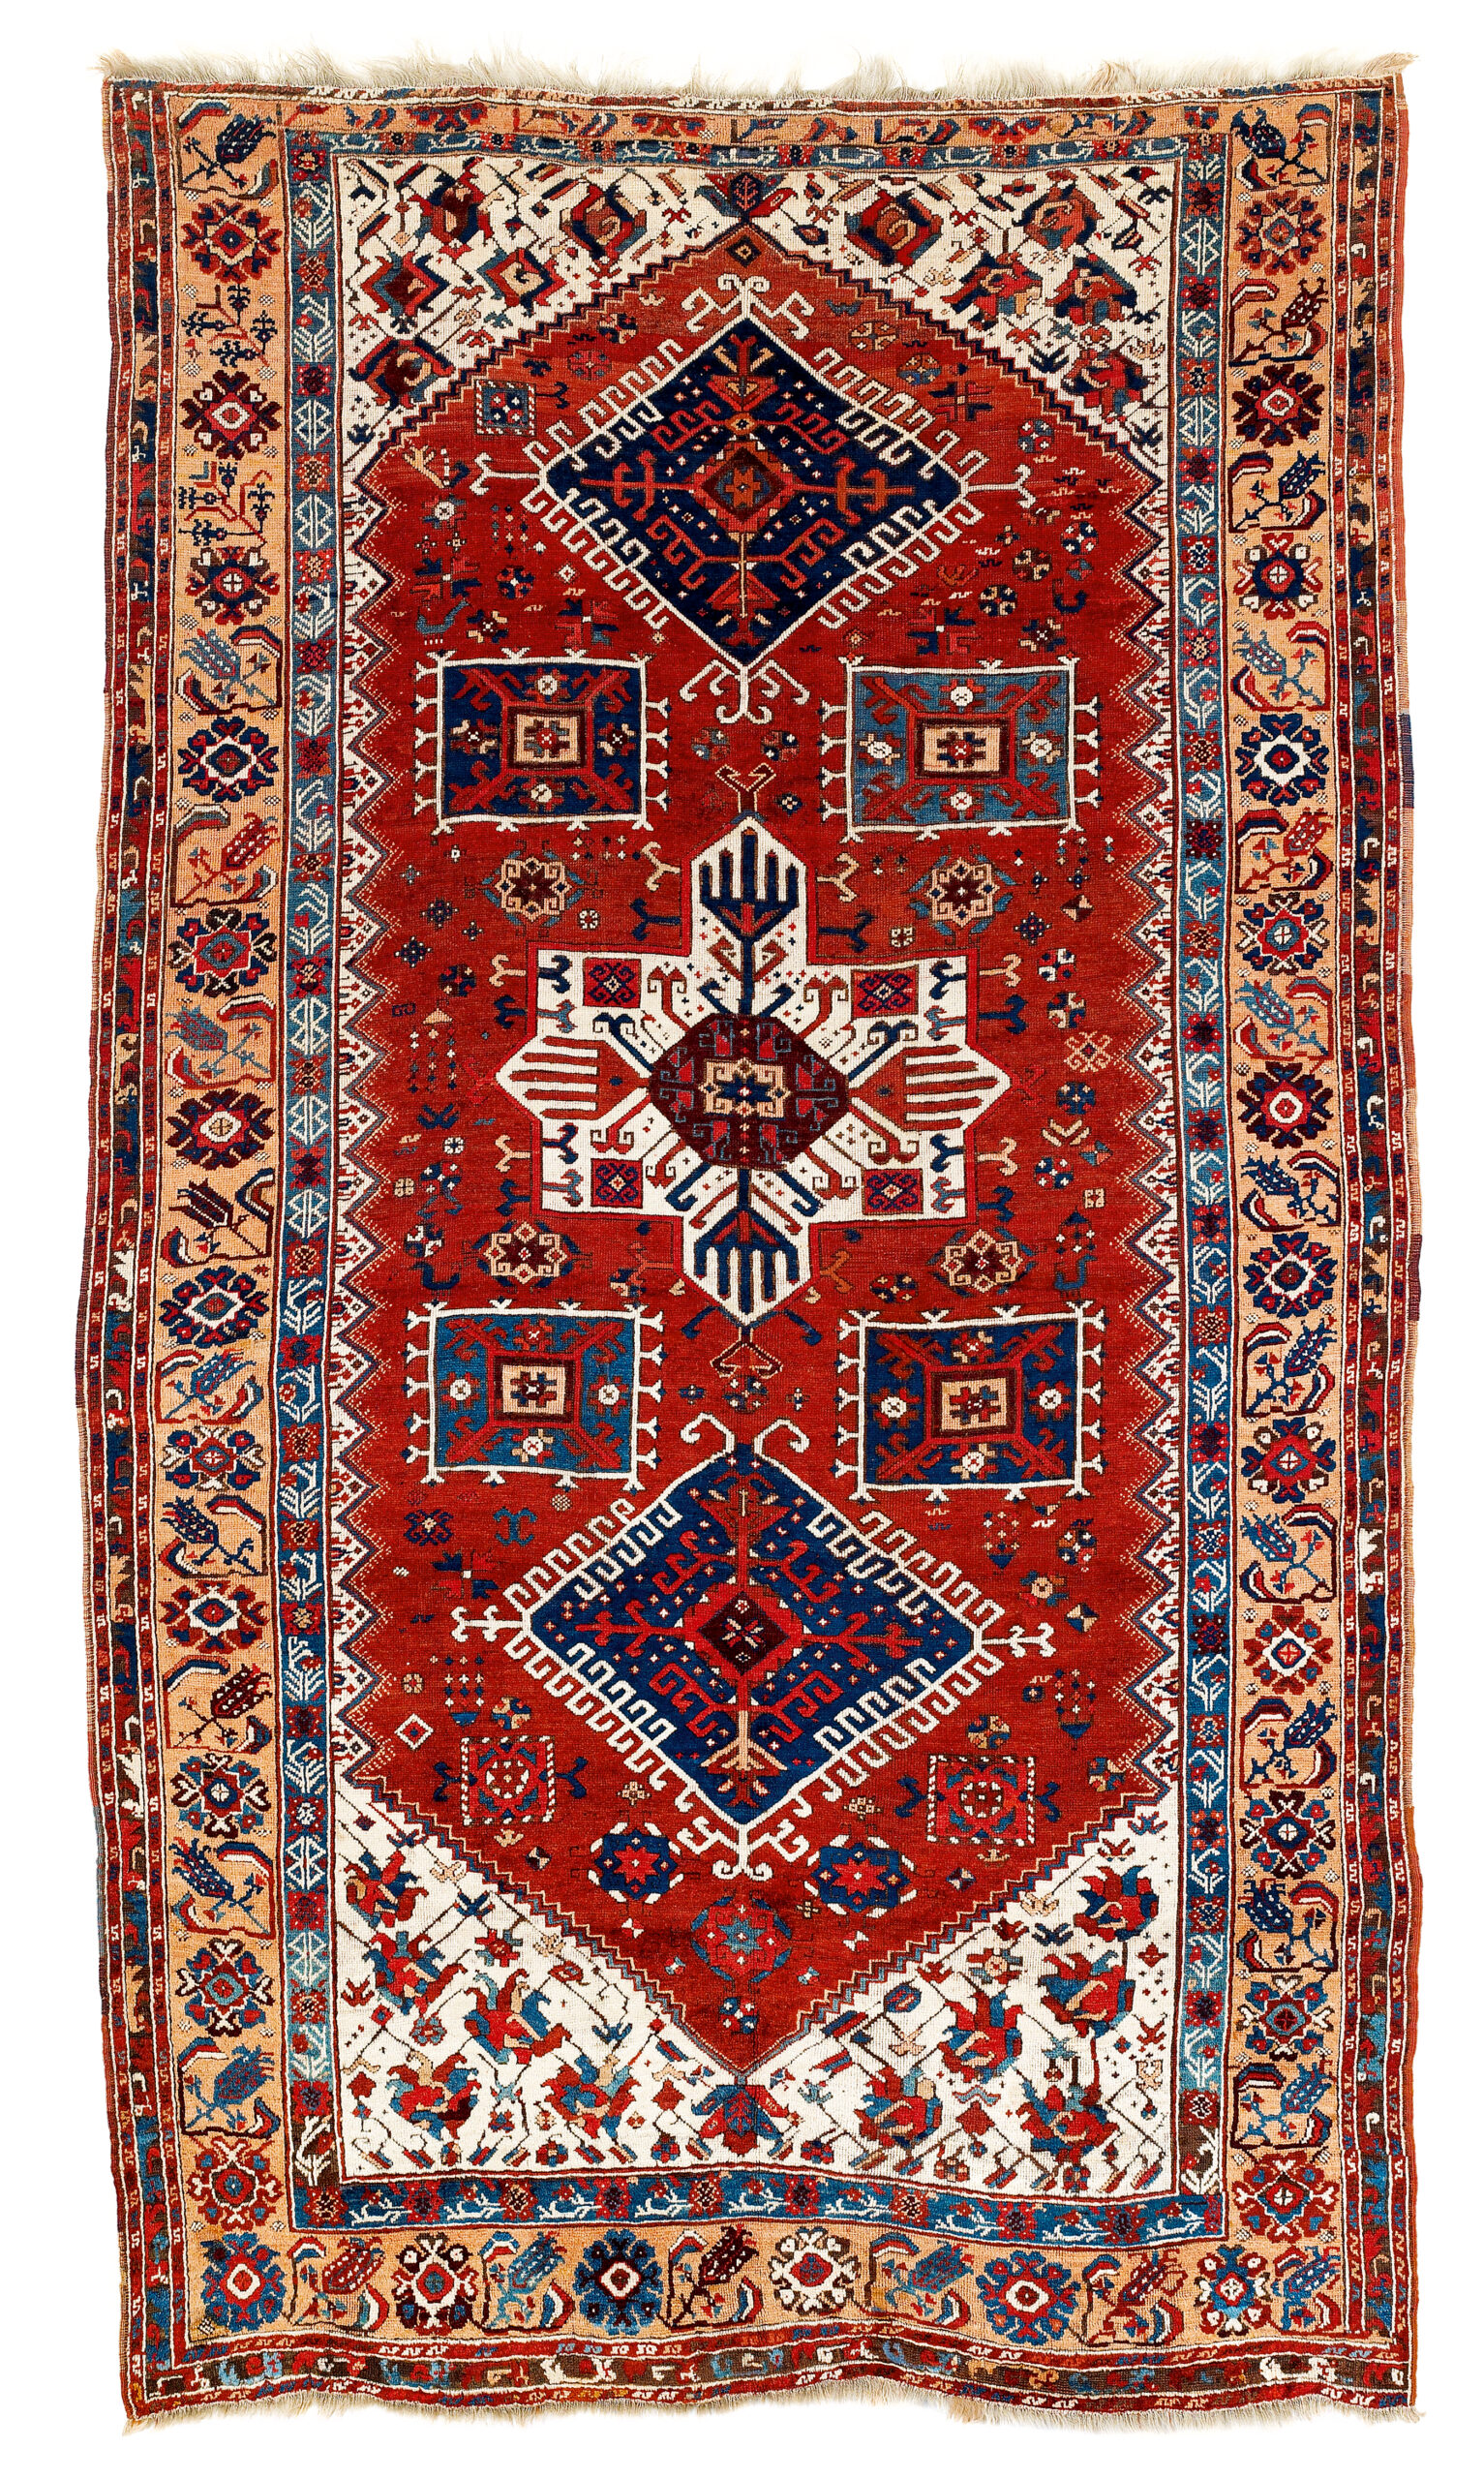 Antique 18th Century Karaman workshop carpet, Central Anatolia